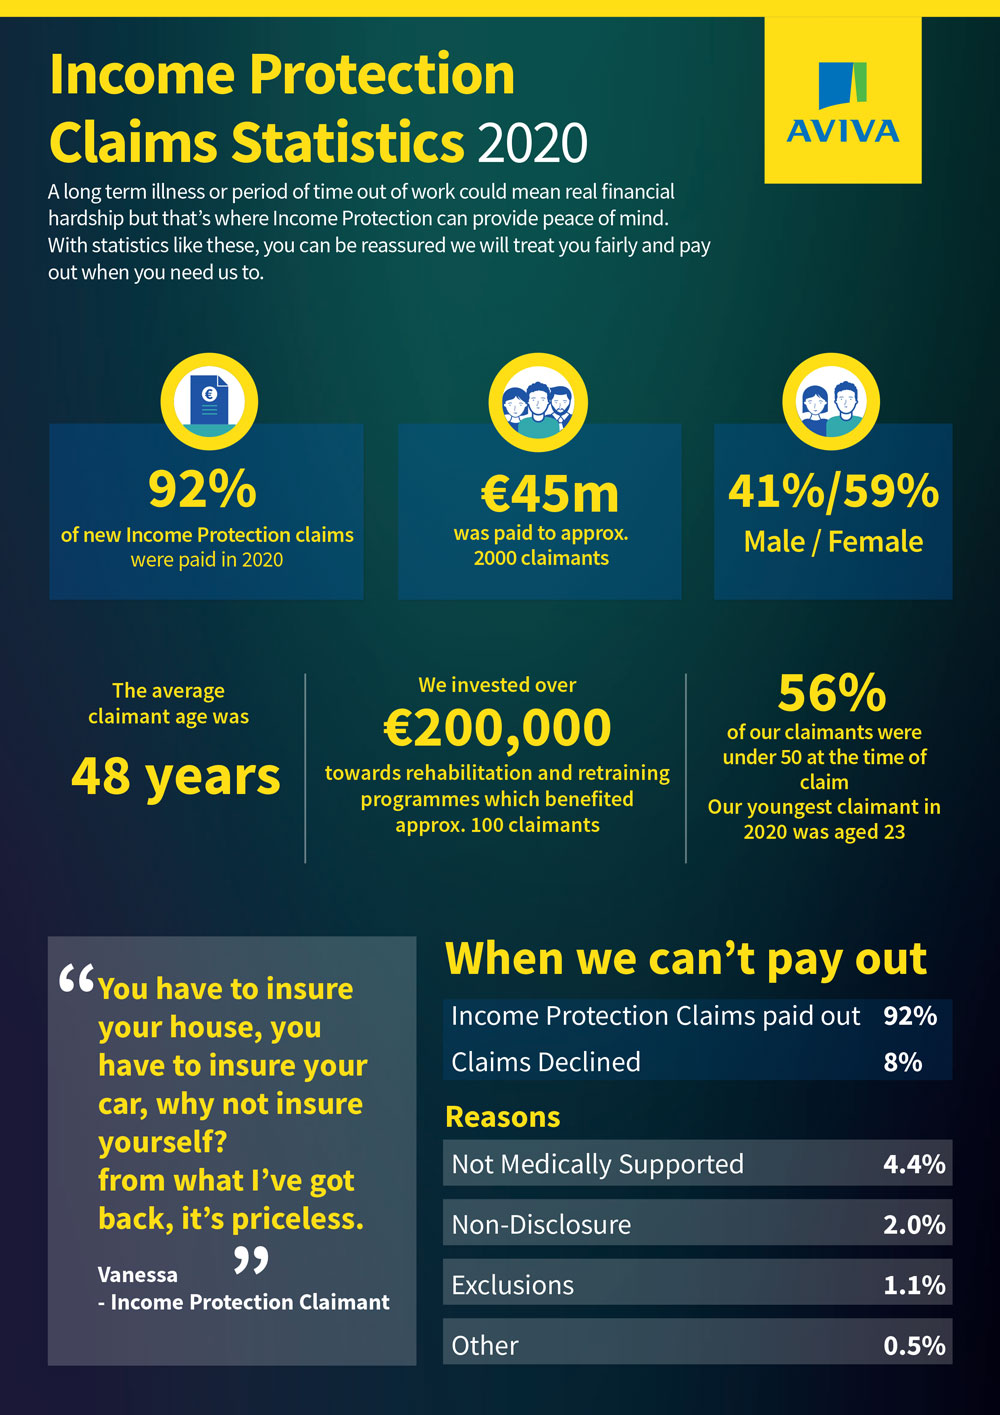 Aviva-Income-Protection-Claims-2020